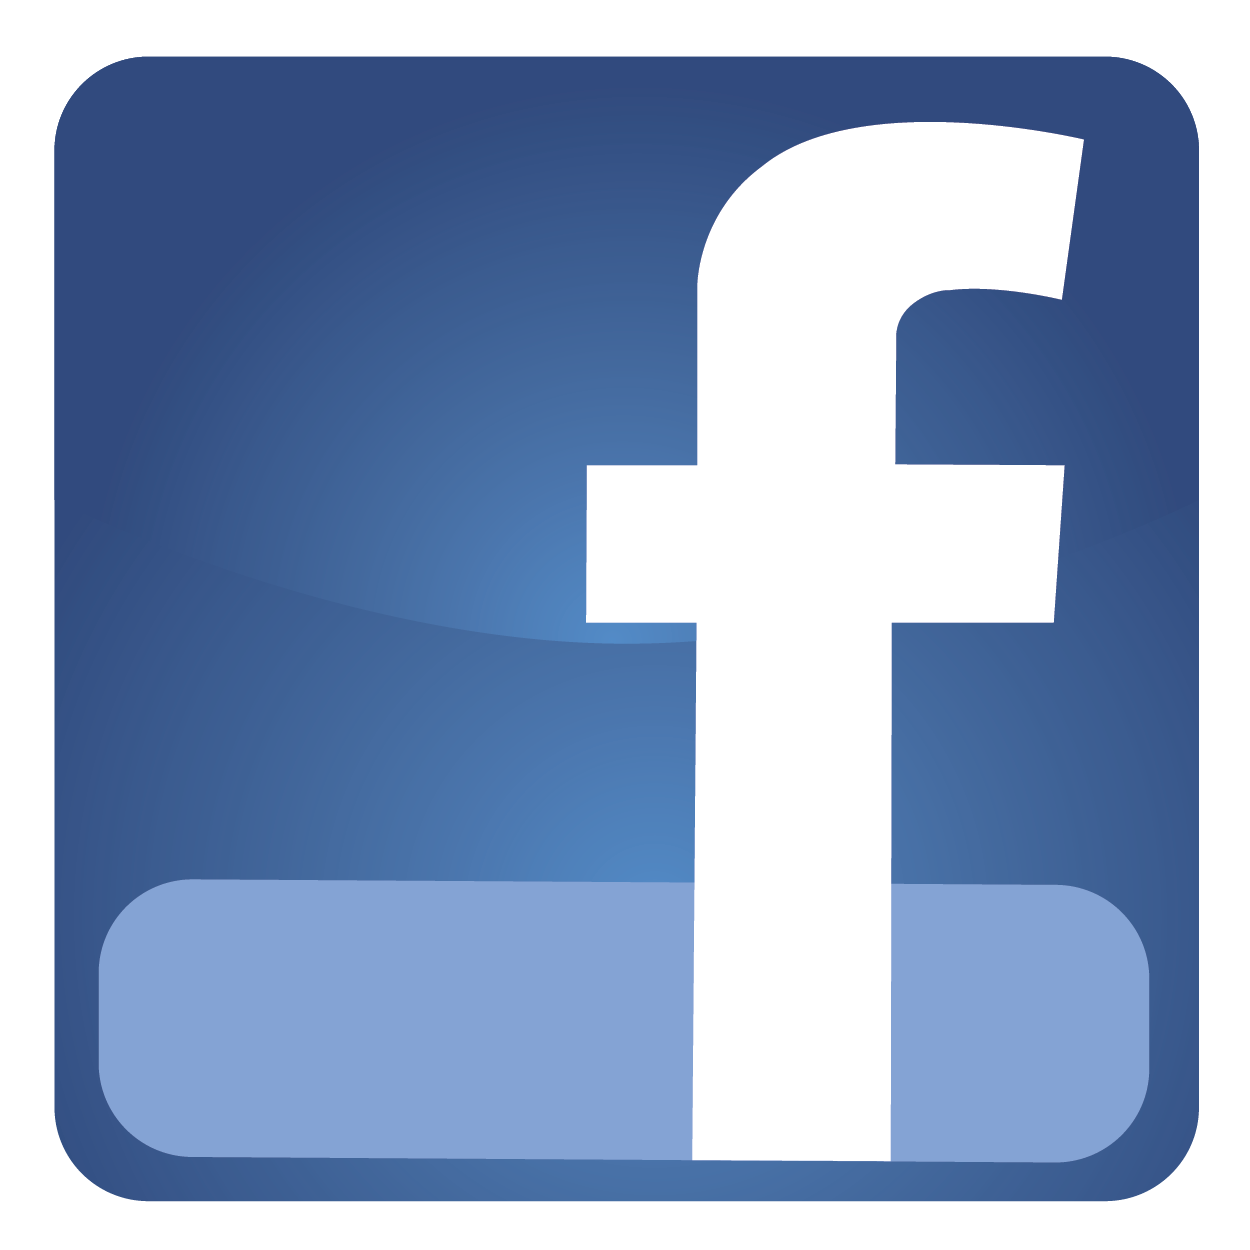 11 Facebook Logo Icon Images